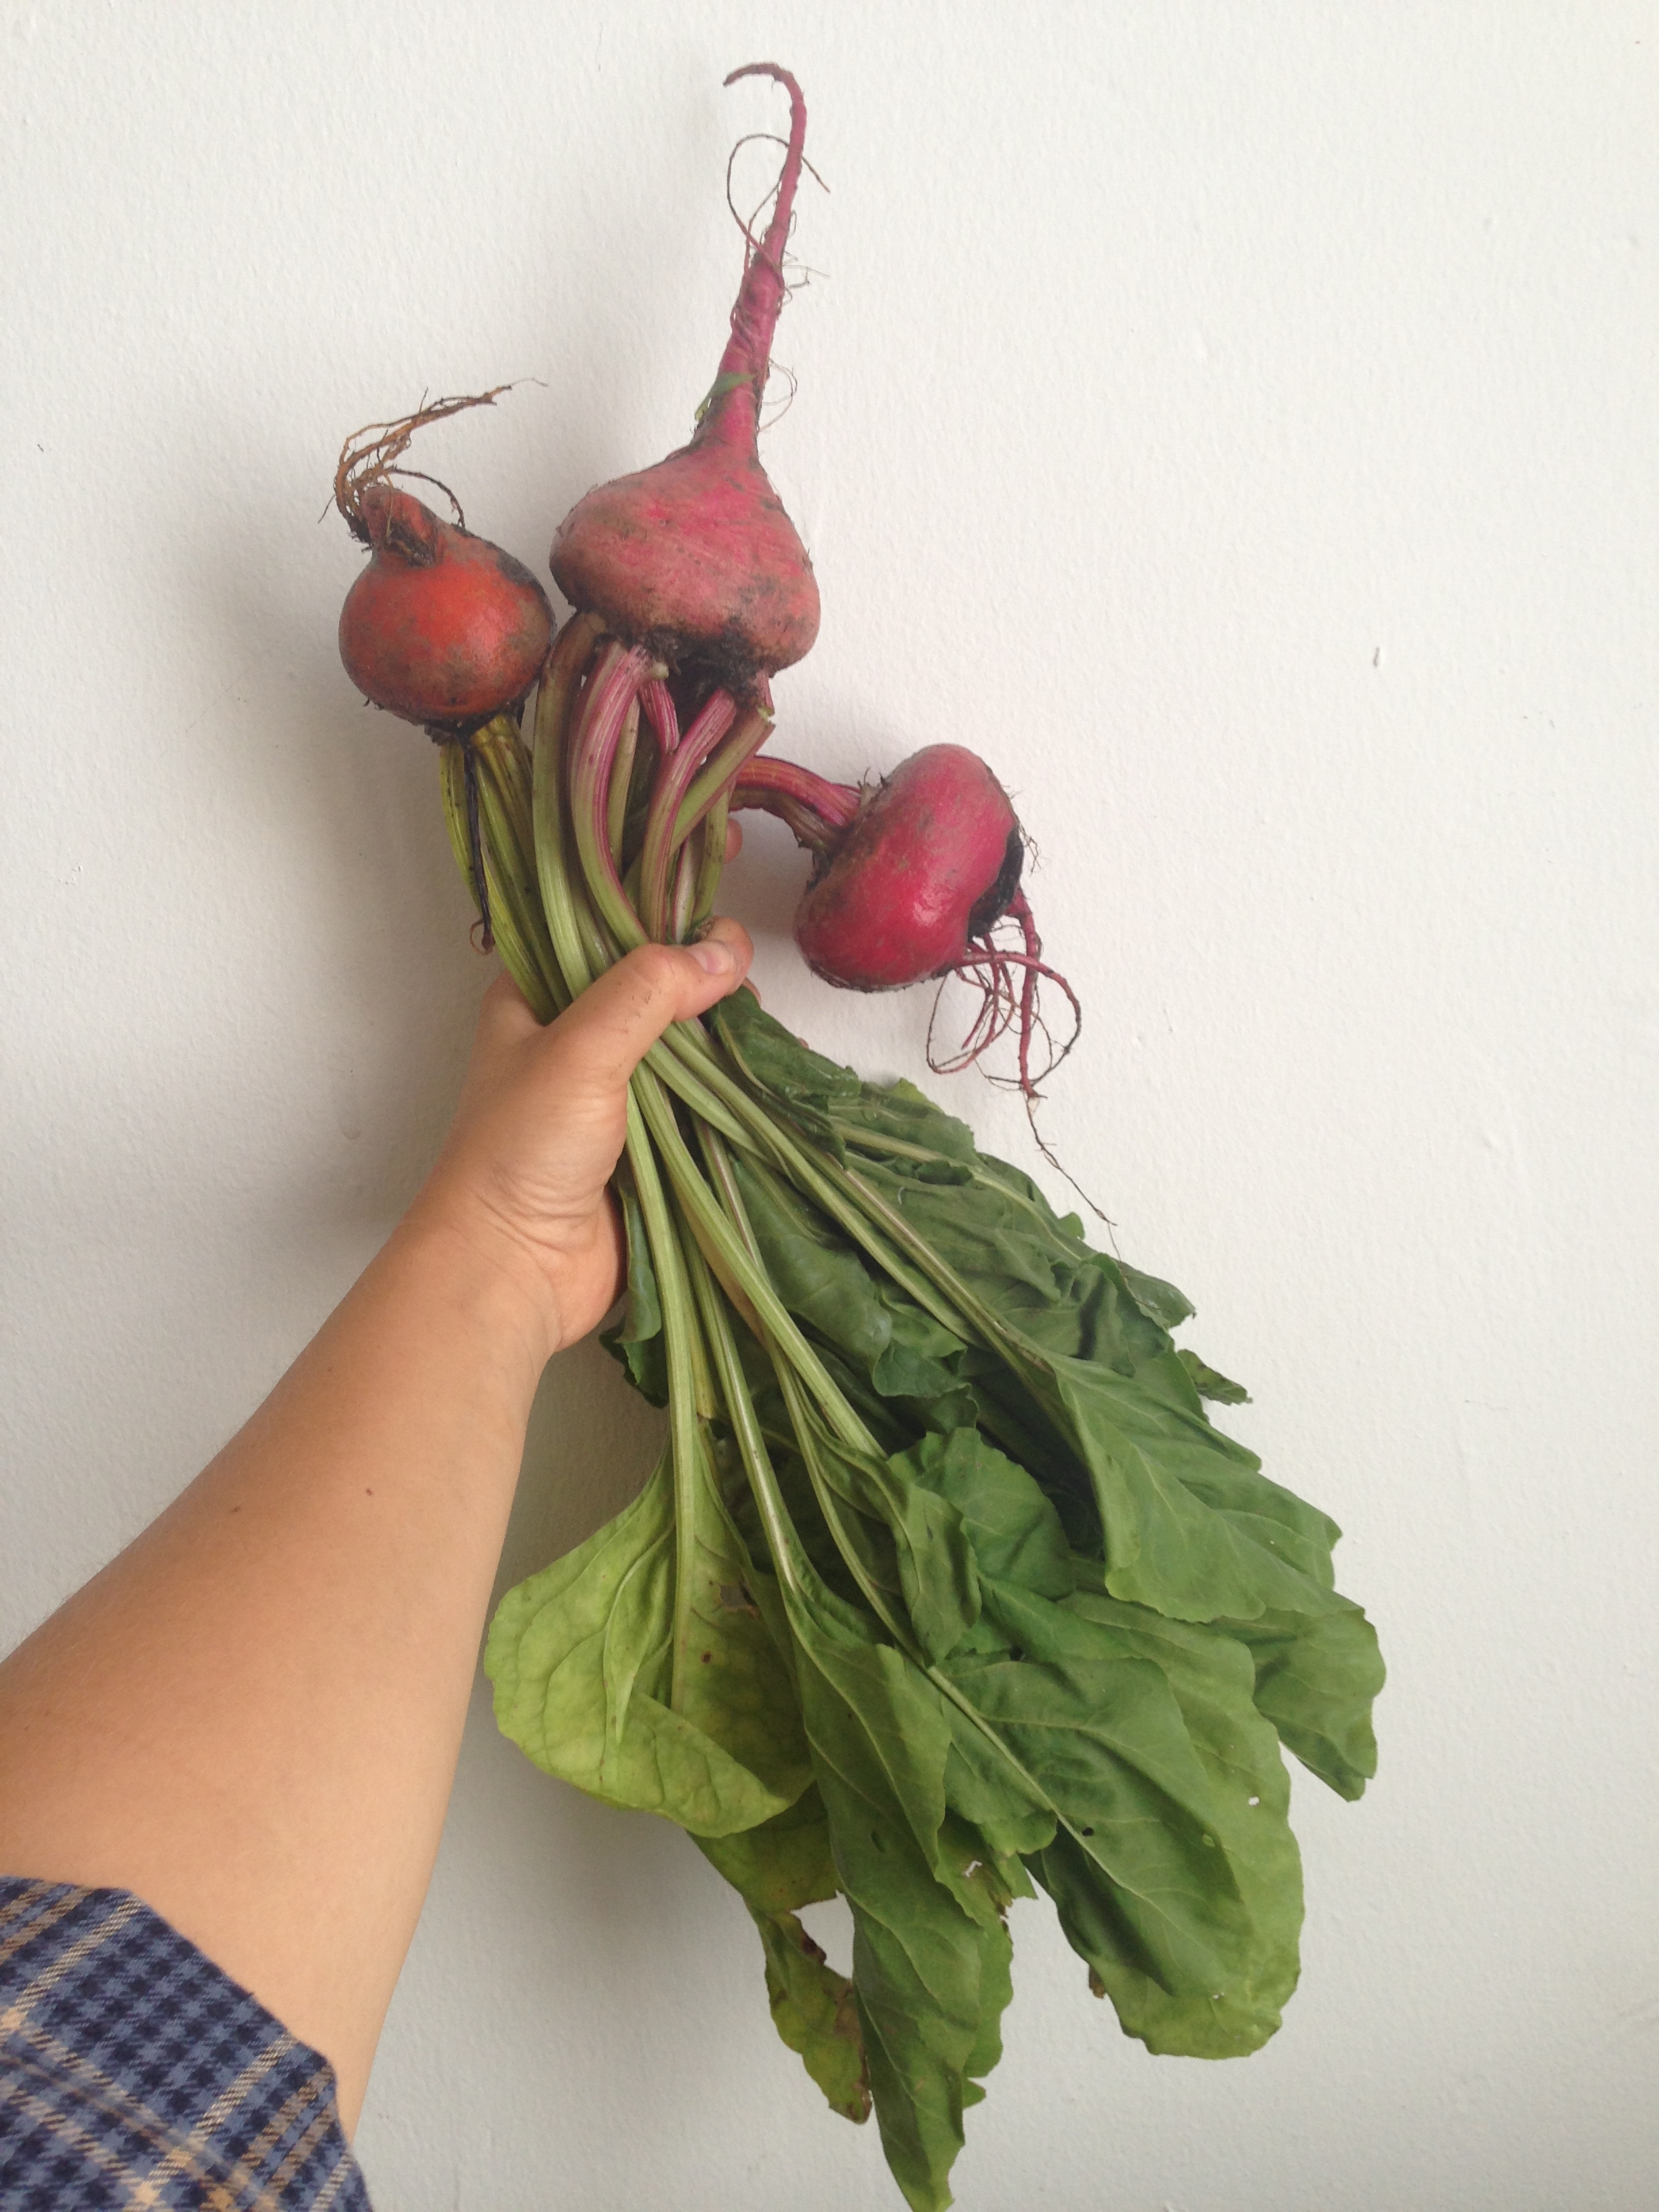 With split radishes come other split roots, like these beets